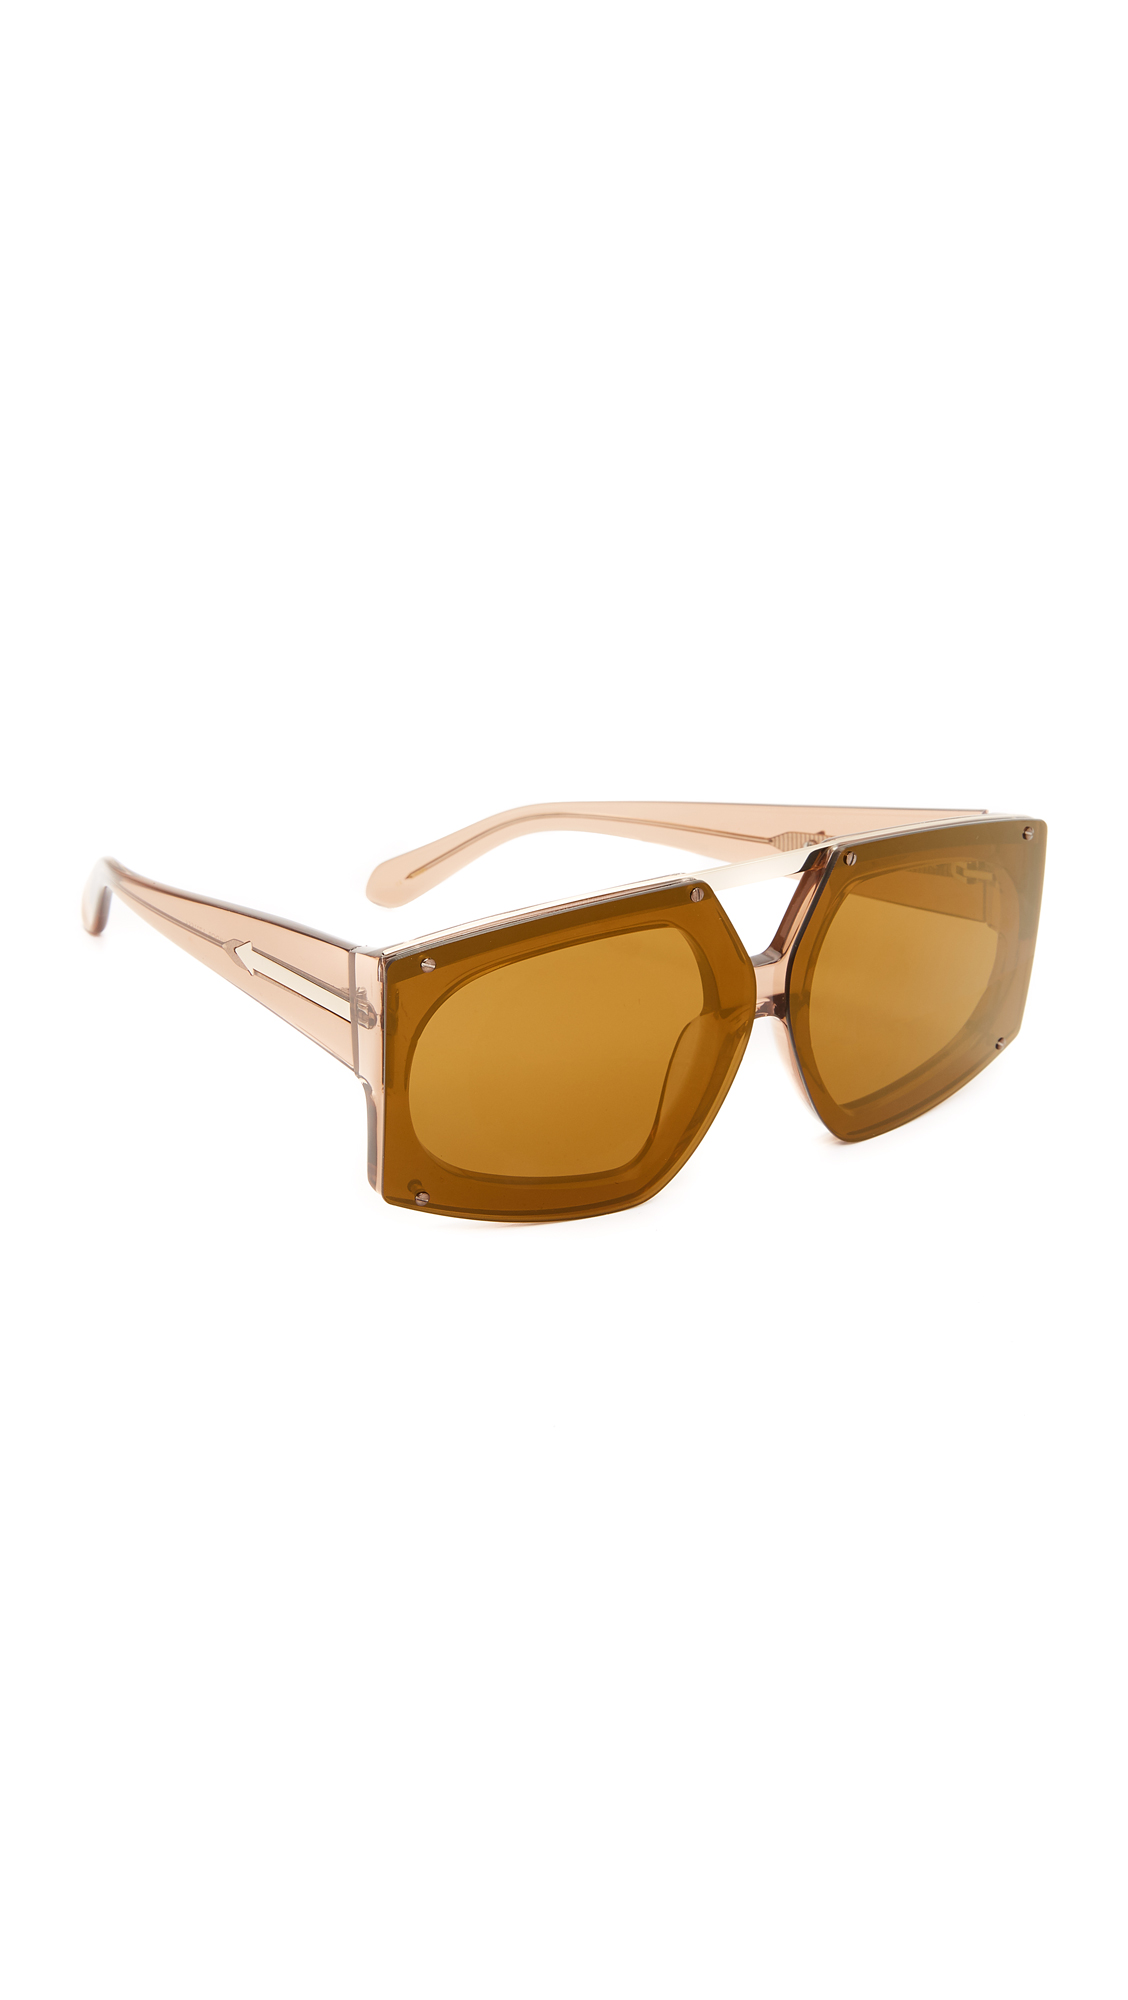 Bold Karen Walker sunglasses in a rimless shield shape. Metal trim. Hard case and cleaning cloth included. Shield frame. Non polarized lenses. Imported, China. Measurements Width: 6in / 15cm Height: 2.25in / 6cm Lens Width: 66mm. Available sizes: